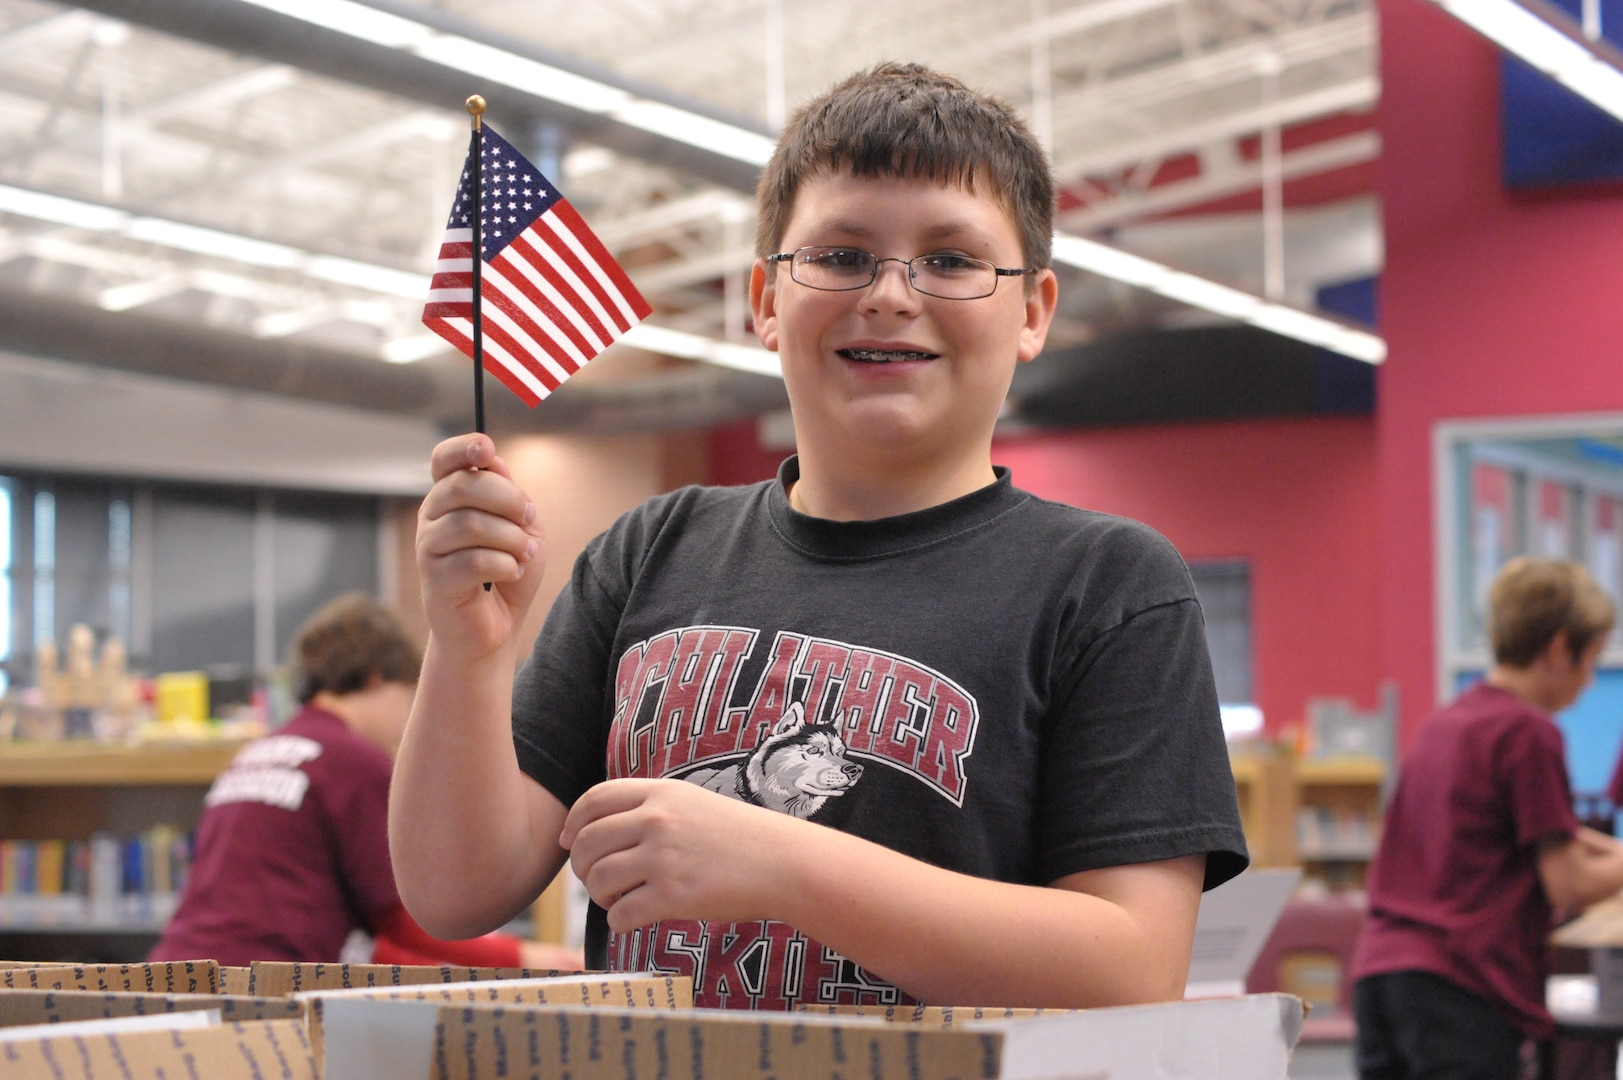 Carter Arispe, Schlather Intermediate School sixth-grader, waves an American flag while participating in Operation Shoebox Dec 9. The students sent care package to deployed Joint Base San Antonio servicemembers over the holidays. (U.S. Air Force photo by Airman 1st Class Alexis Siekert)